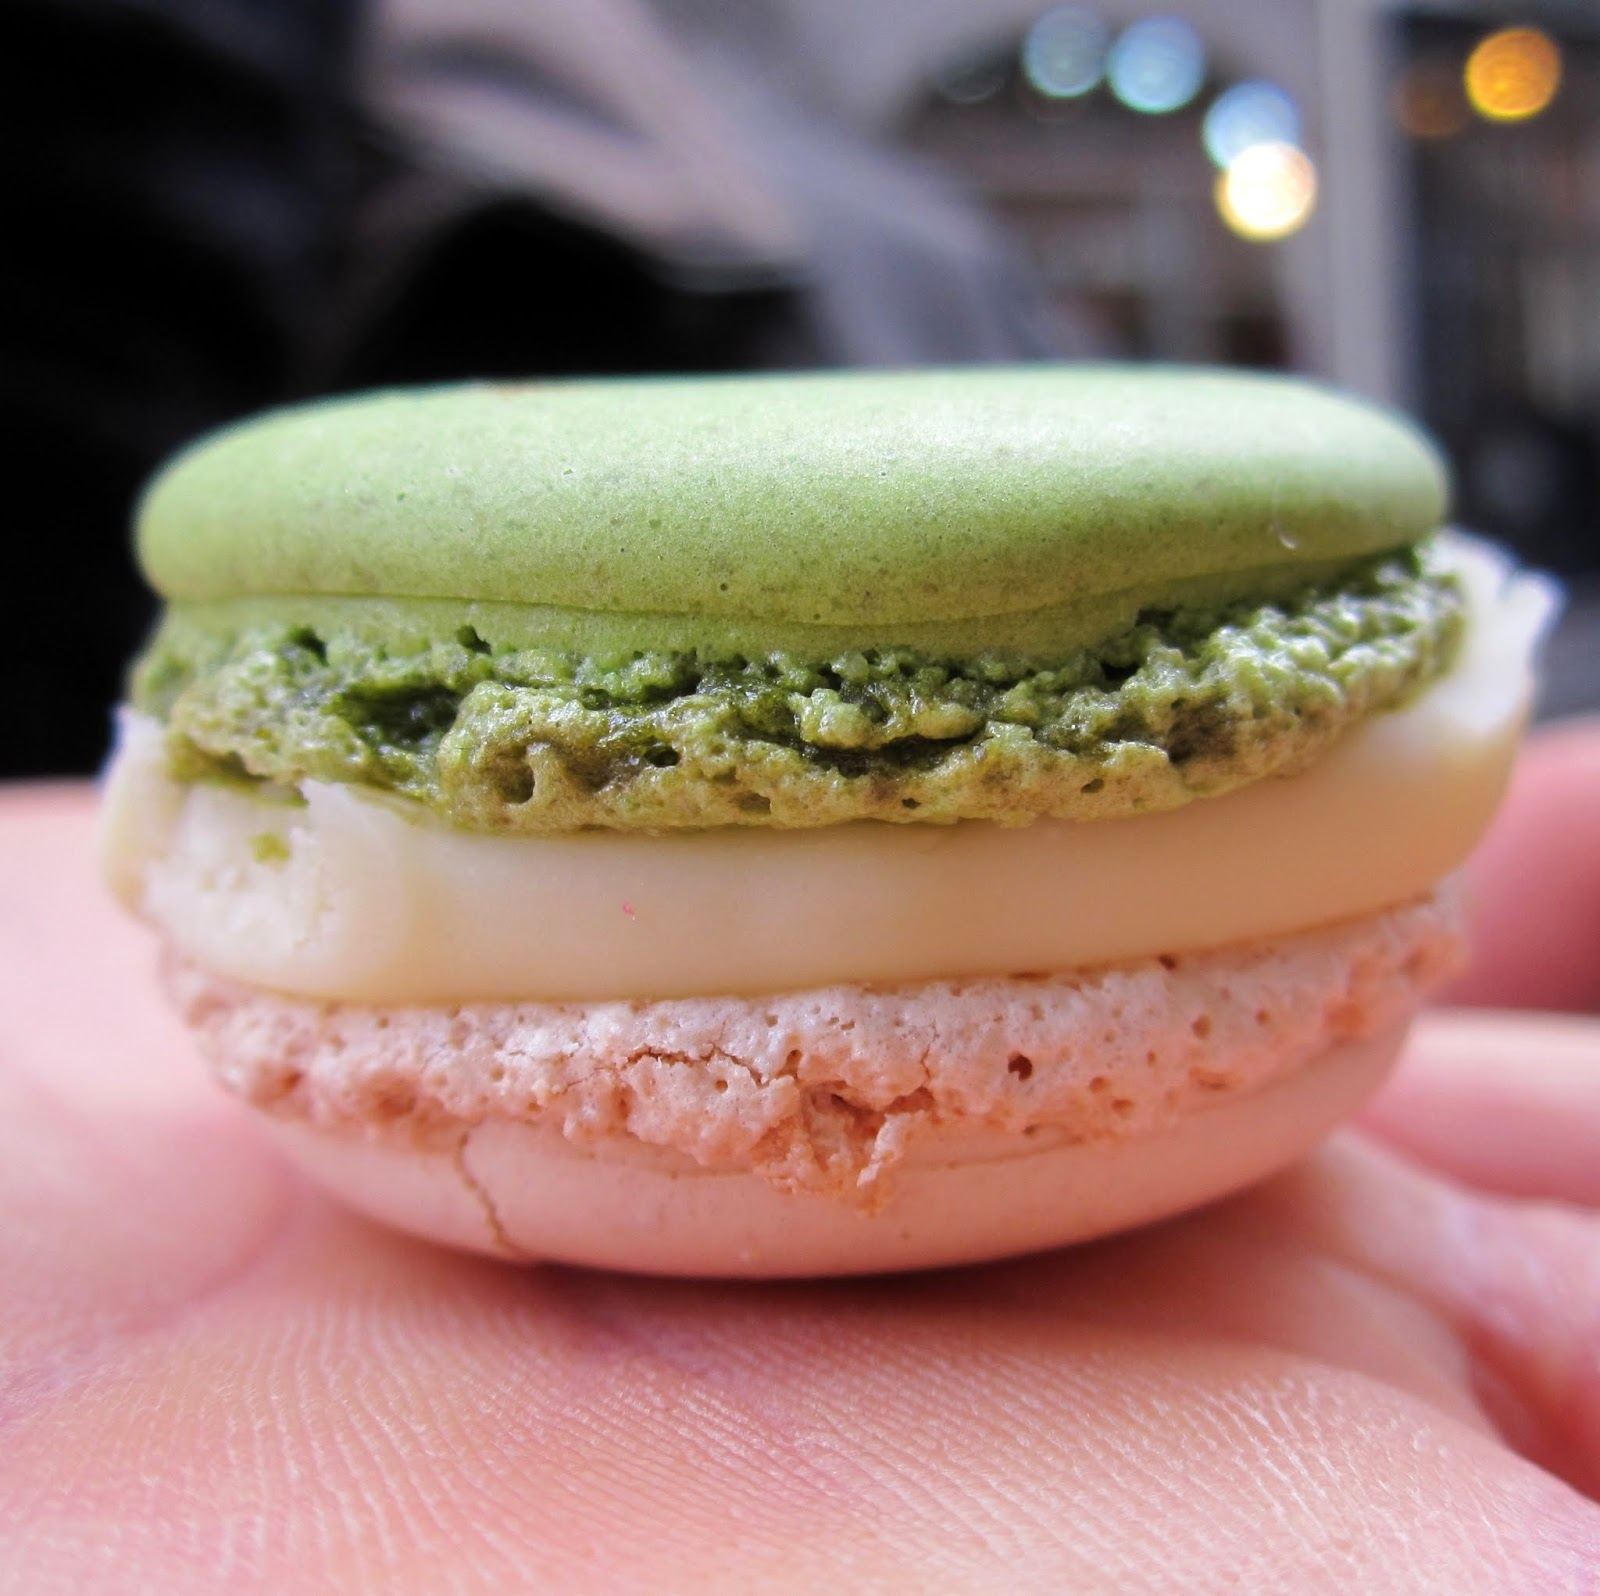 Pierre Hermé Macaron Yogurt Lime Paris 2014